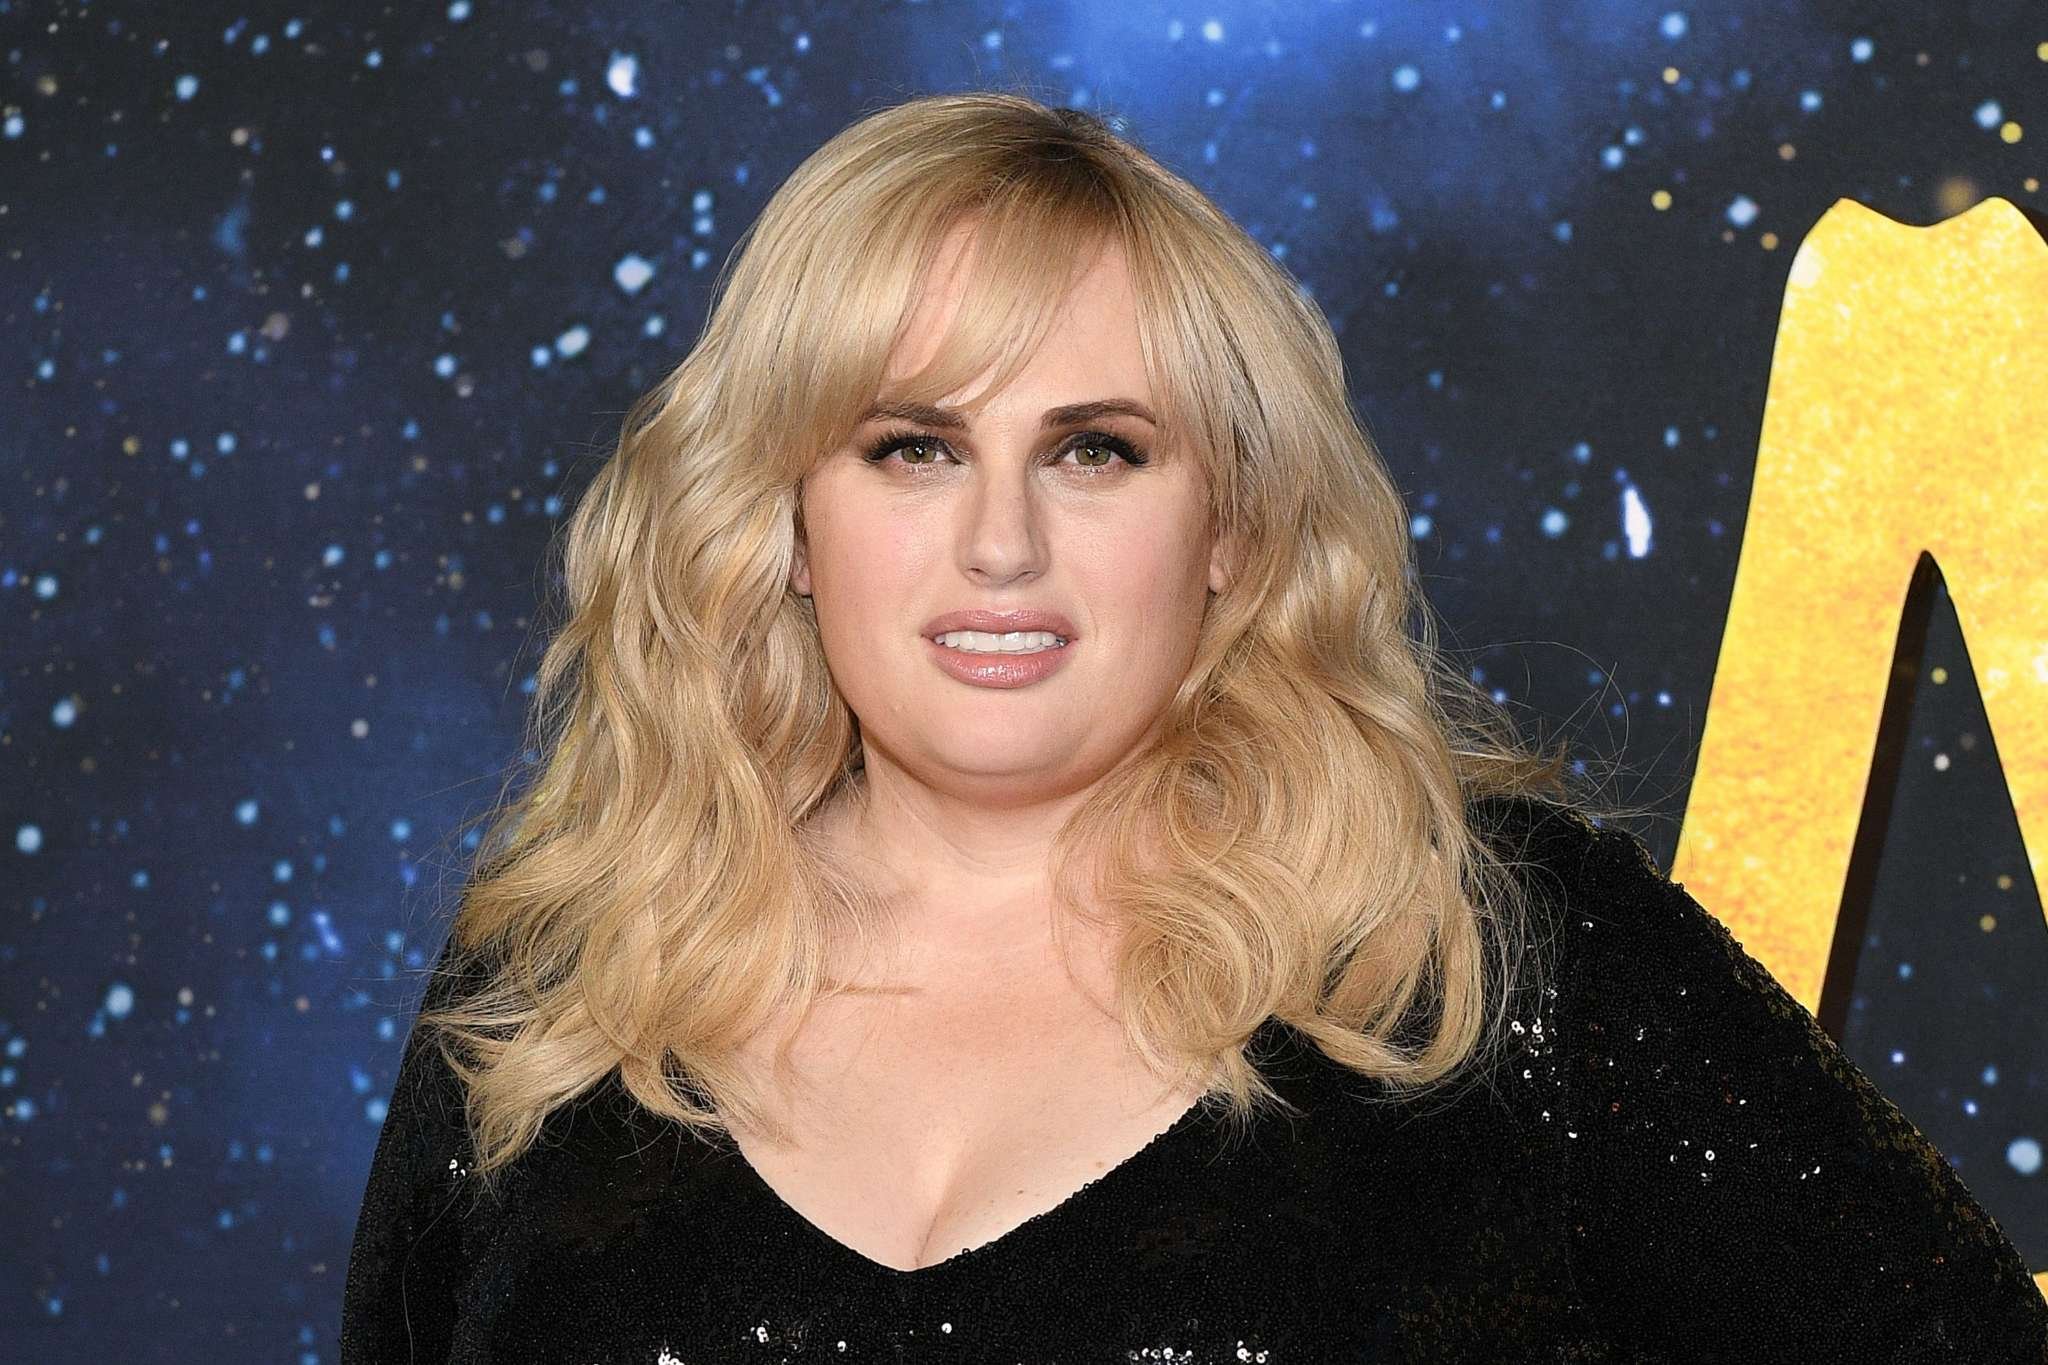 rebel-wilson-stuns-in-red-dress-as-she-shows-off-her-incredible-weight-loss